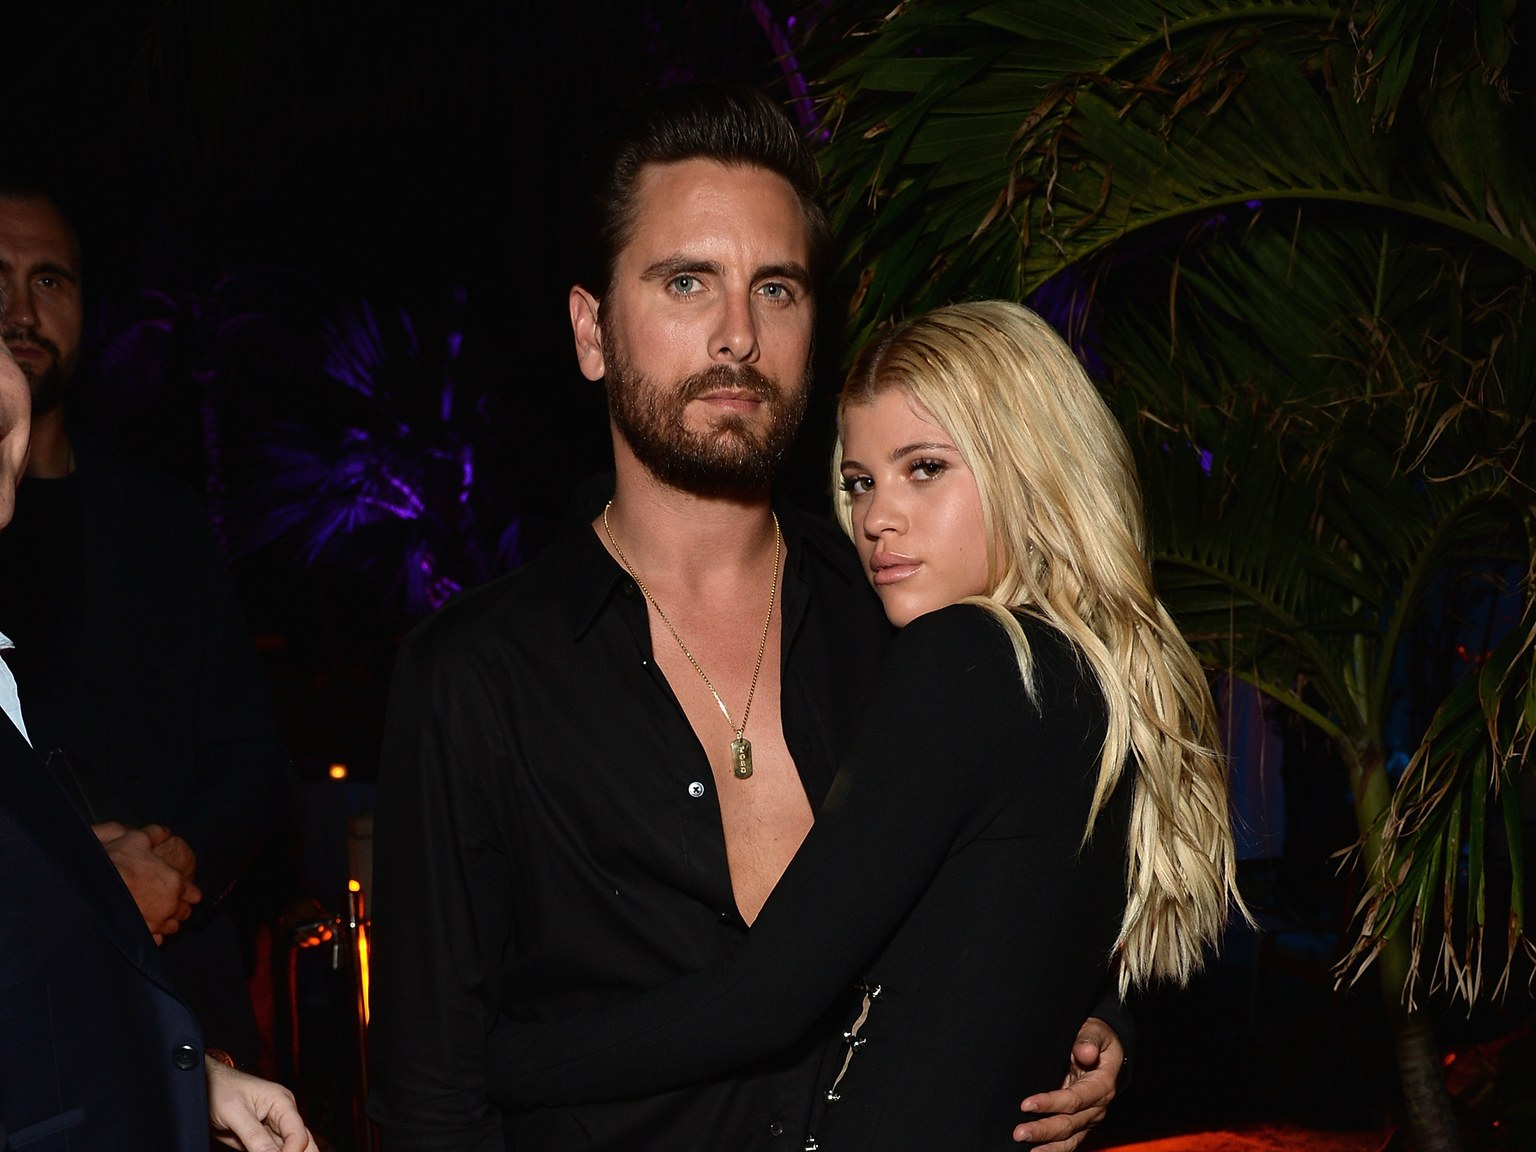 Scott Disick and Sofia Richie Reunite One Month After Their Breakup